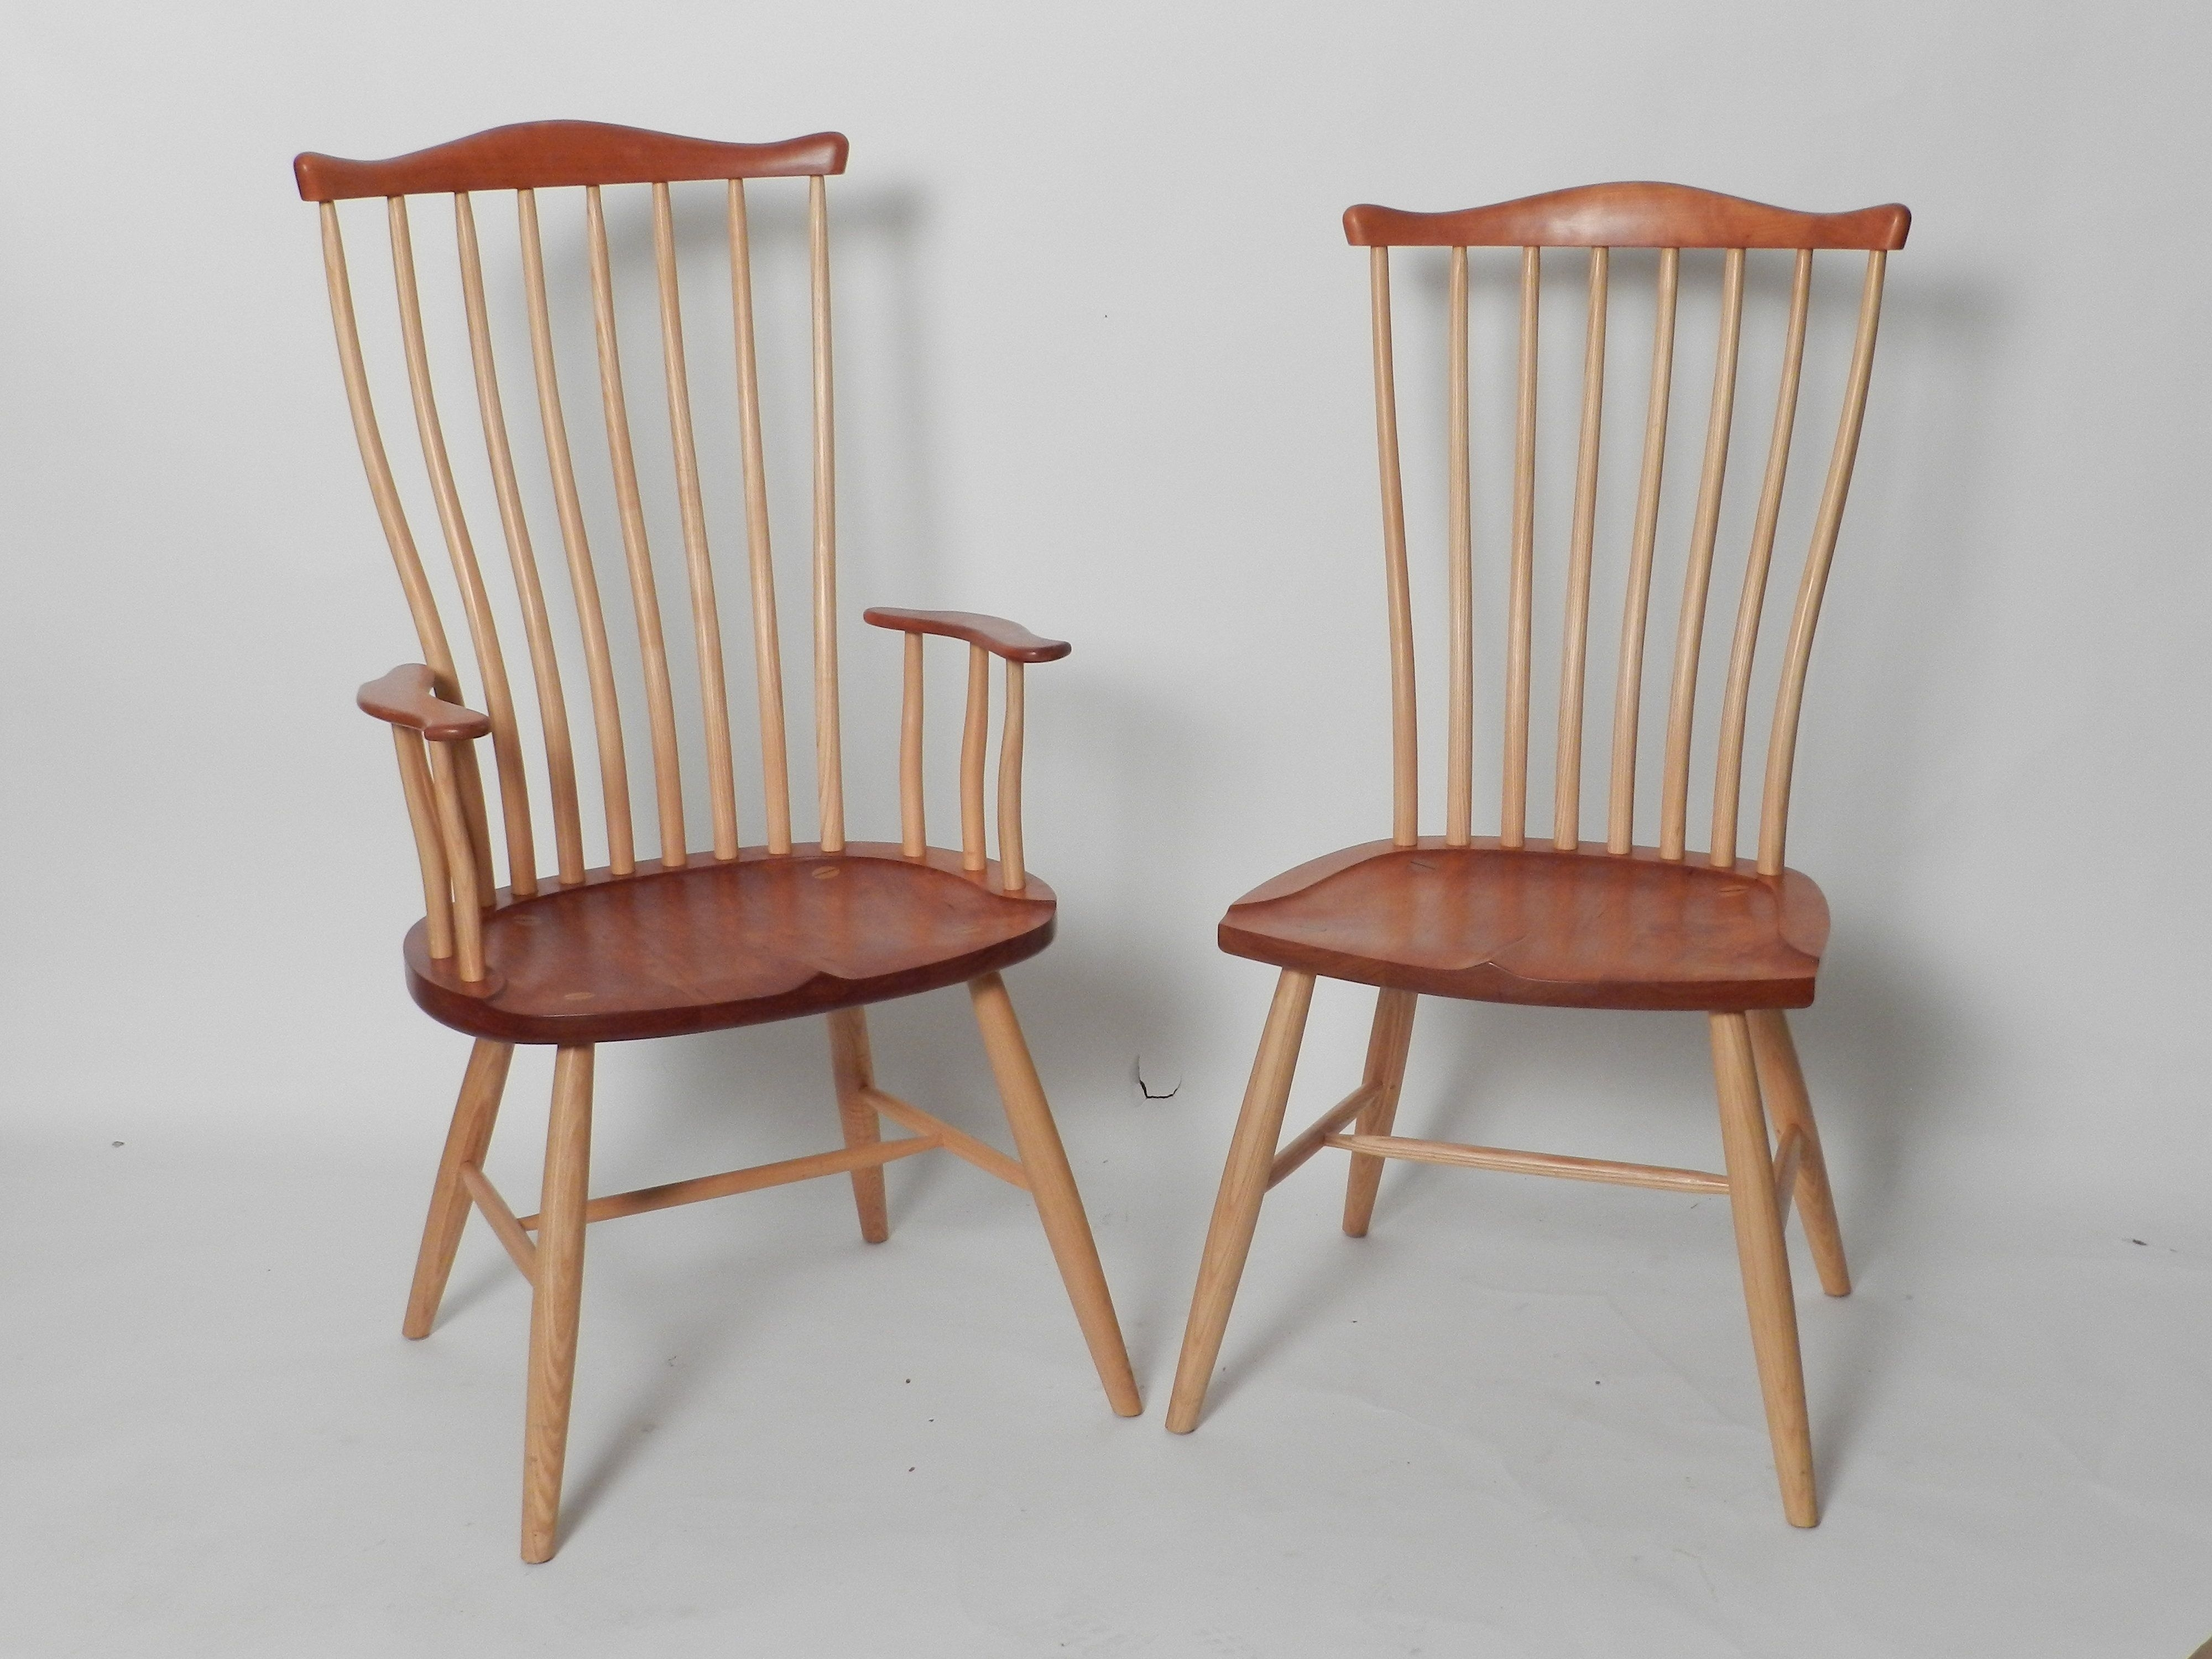 Popular Photo of Swift Side Chairs